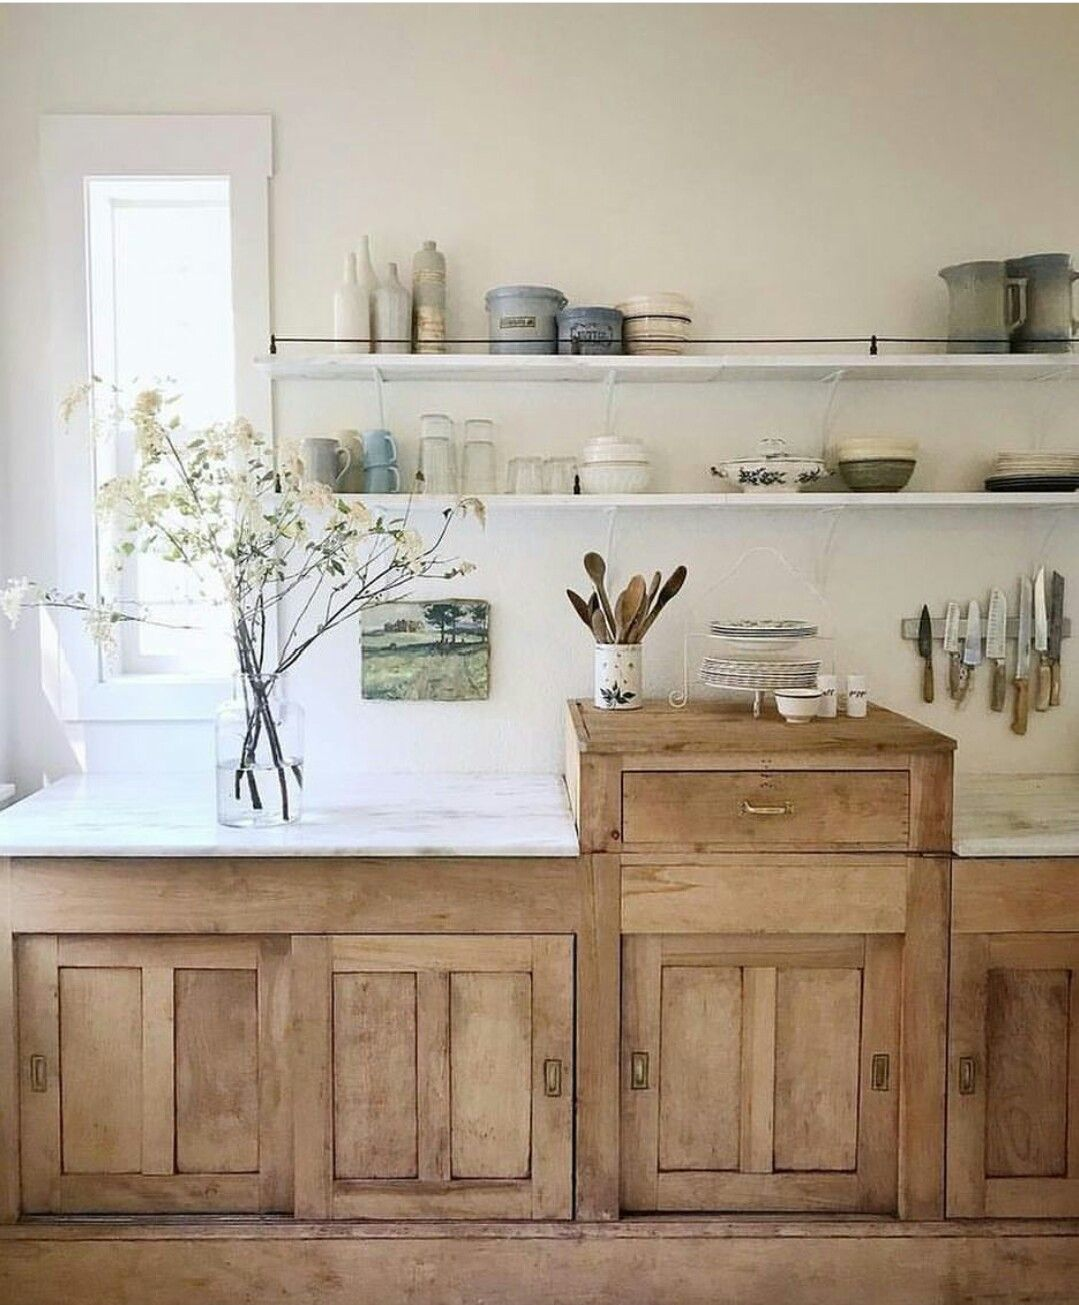 Kitchen Cabinets Stained Light: Pin By Jenni Kayne On Kitchen In 2019